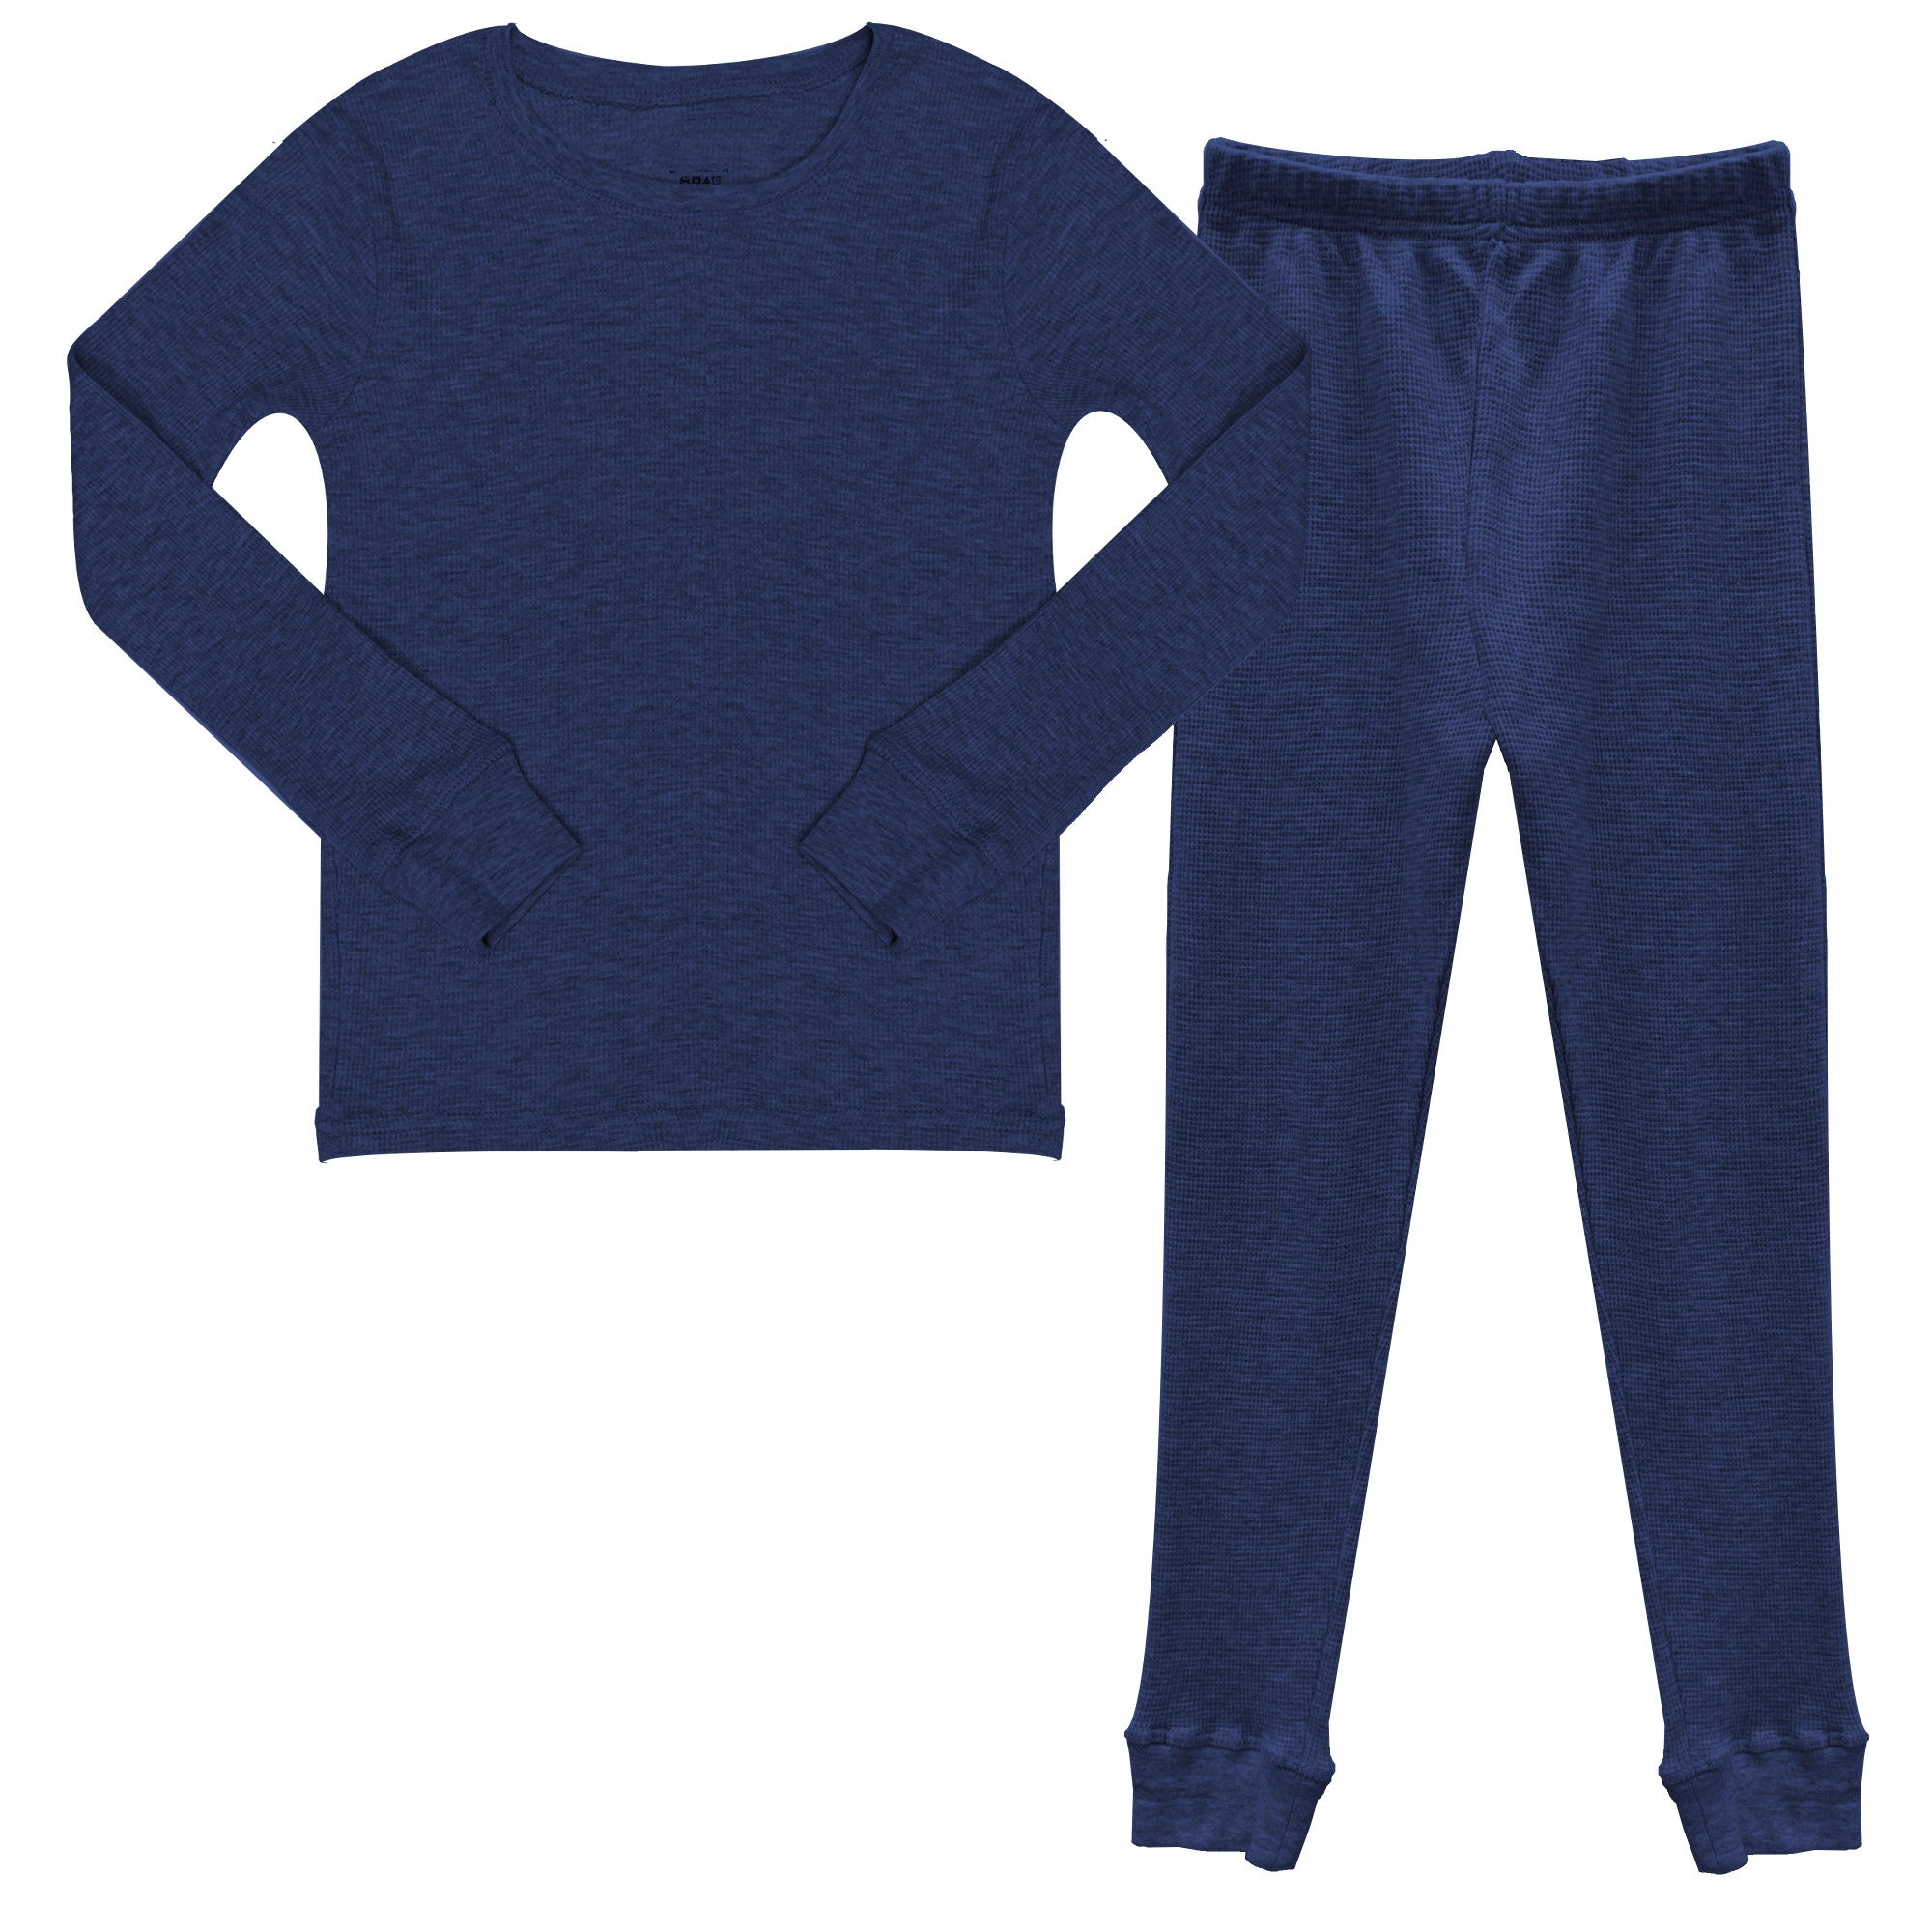 boys thermal pajama long johns, boys waffle thermal set, boys warm pajama set, boys warm base layer for skiing, boys long johns